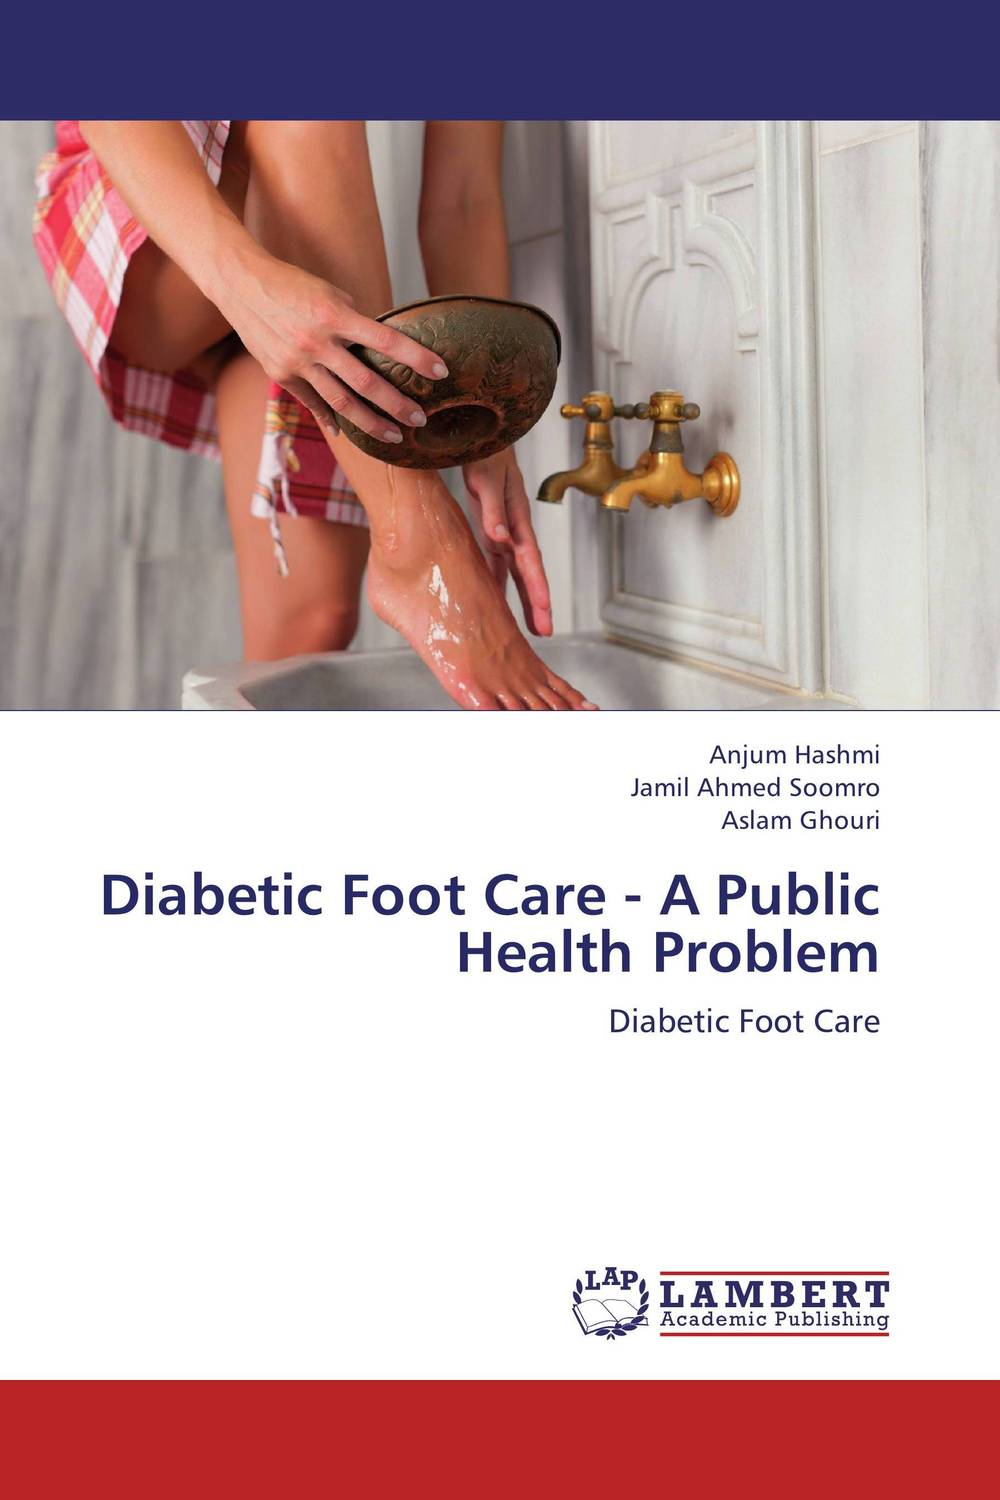 Diabetic Foot Care - A Public Health Problem rutin and diabetic gastropathy